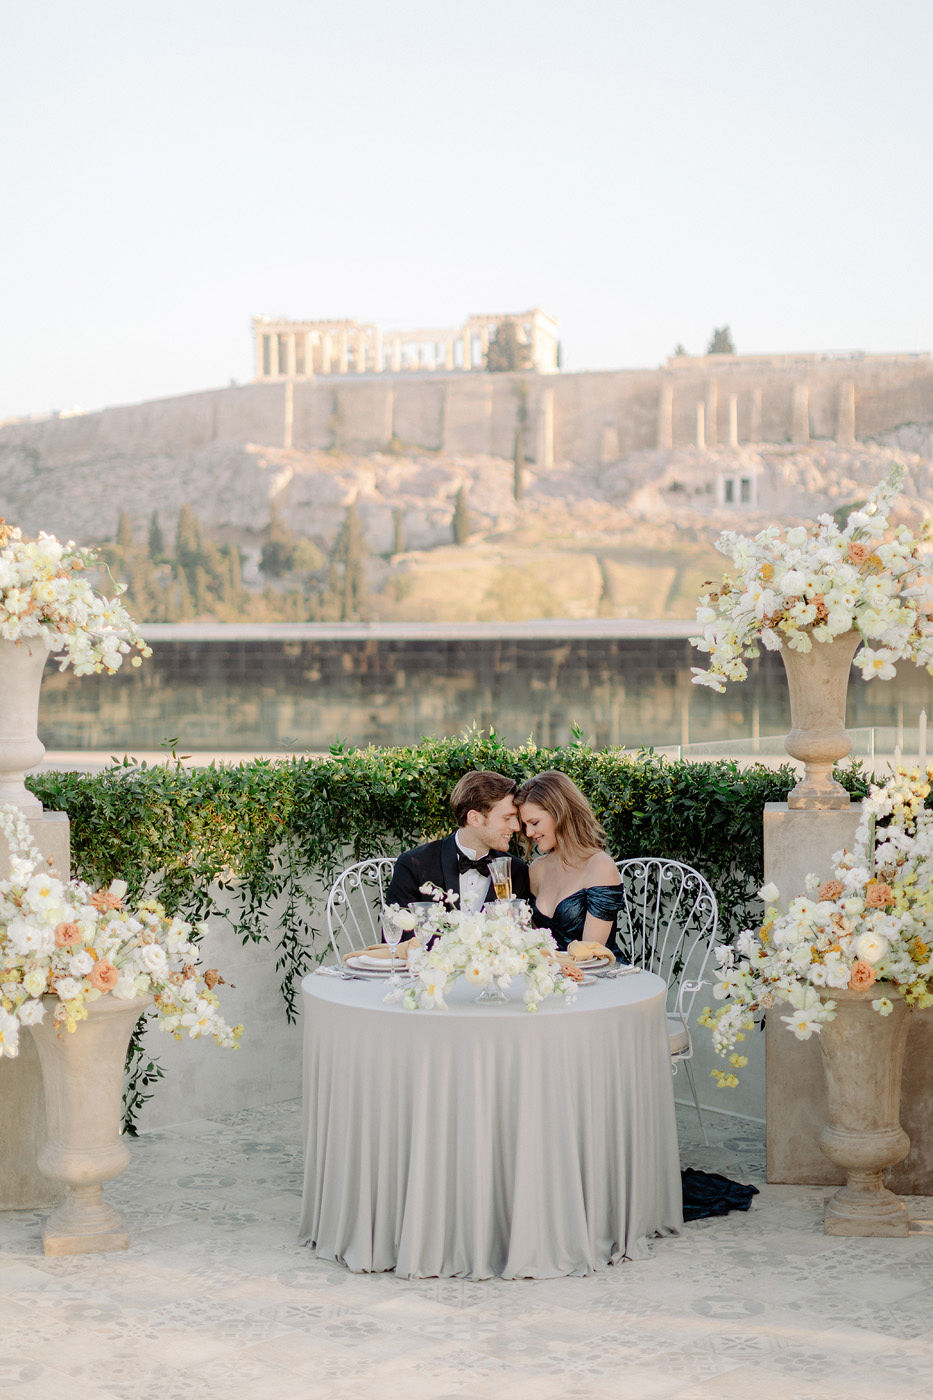 Wedding Proposal In Athens - Romantic Dinner